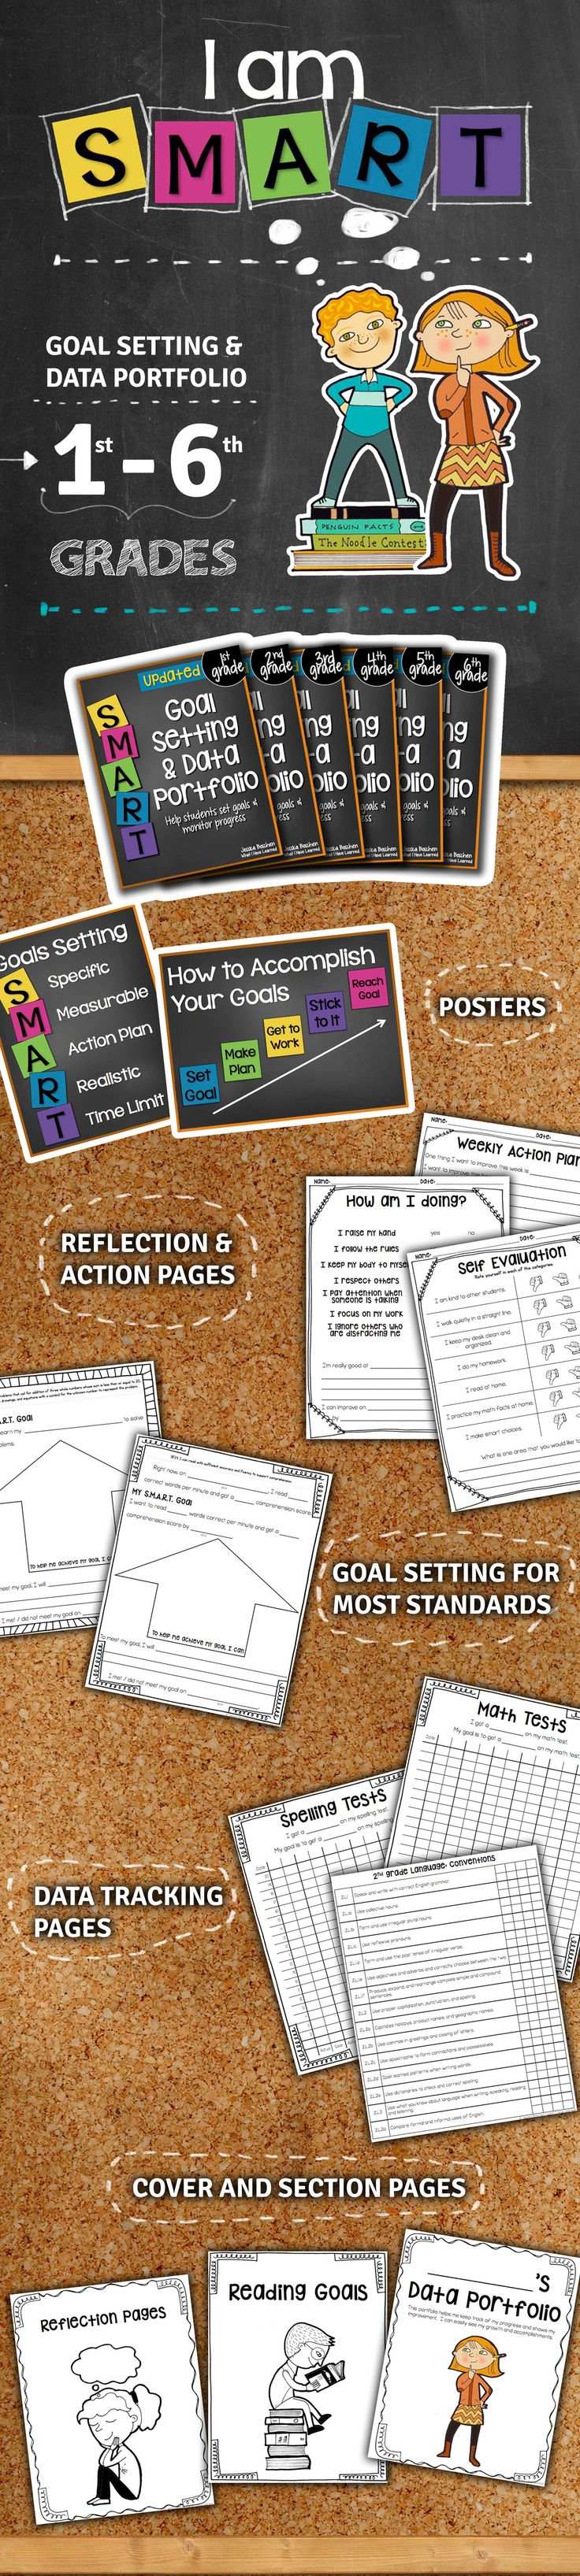 SMART Goal Setting in elementary school.  Help students set SMART goals by setting strategic, measurable goals with an action plan that are realistic and timely.  Included are data binders, goal setting forms, reflection pages and much, much more. | Student Directed Learning | Data-driven Education | Teaching Metacognition | Creating Student Buy-In | Teaching Personal Responsibility